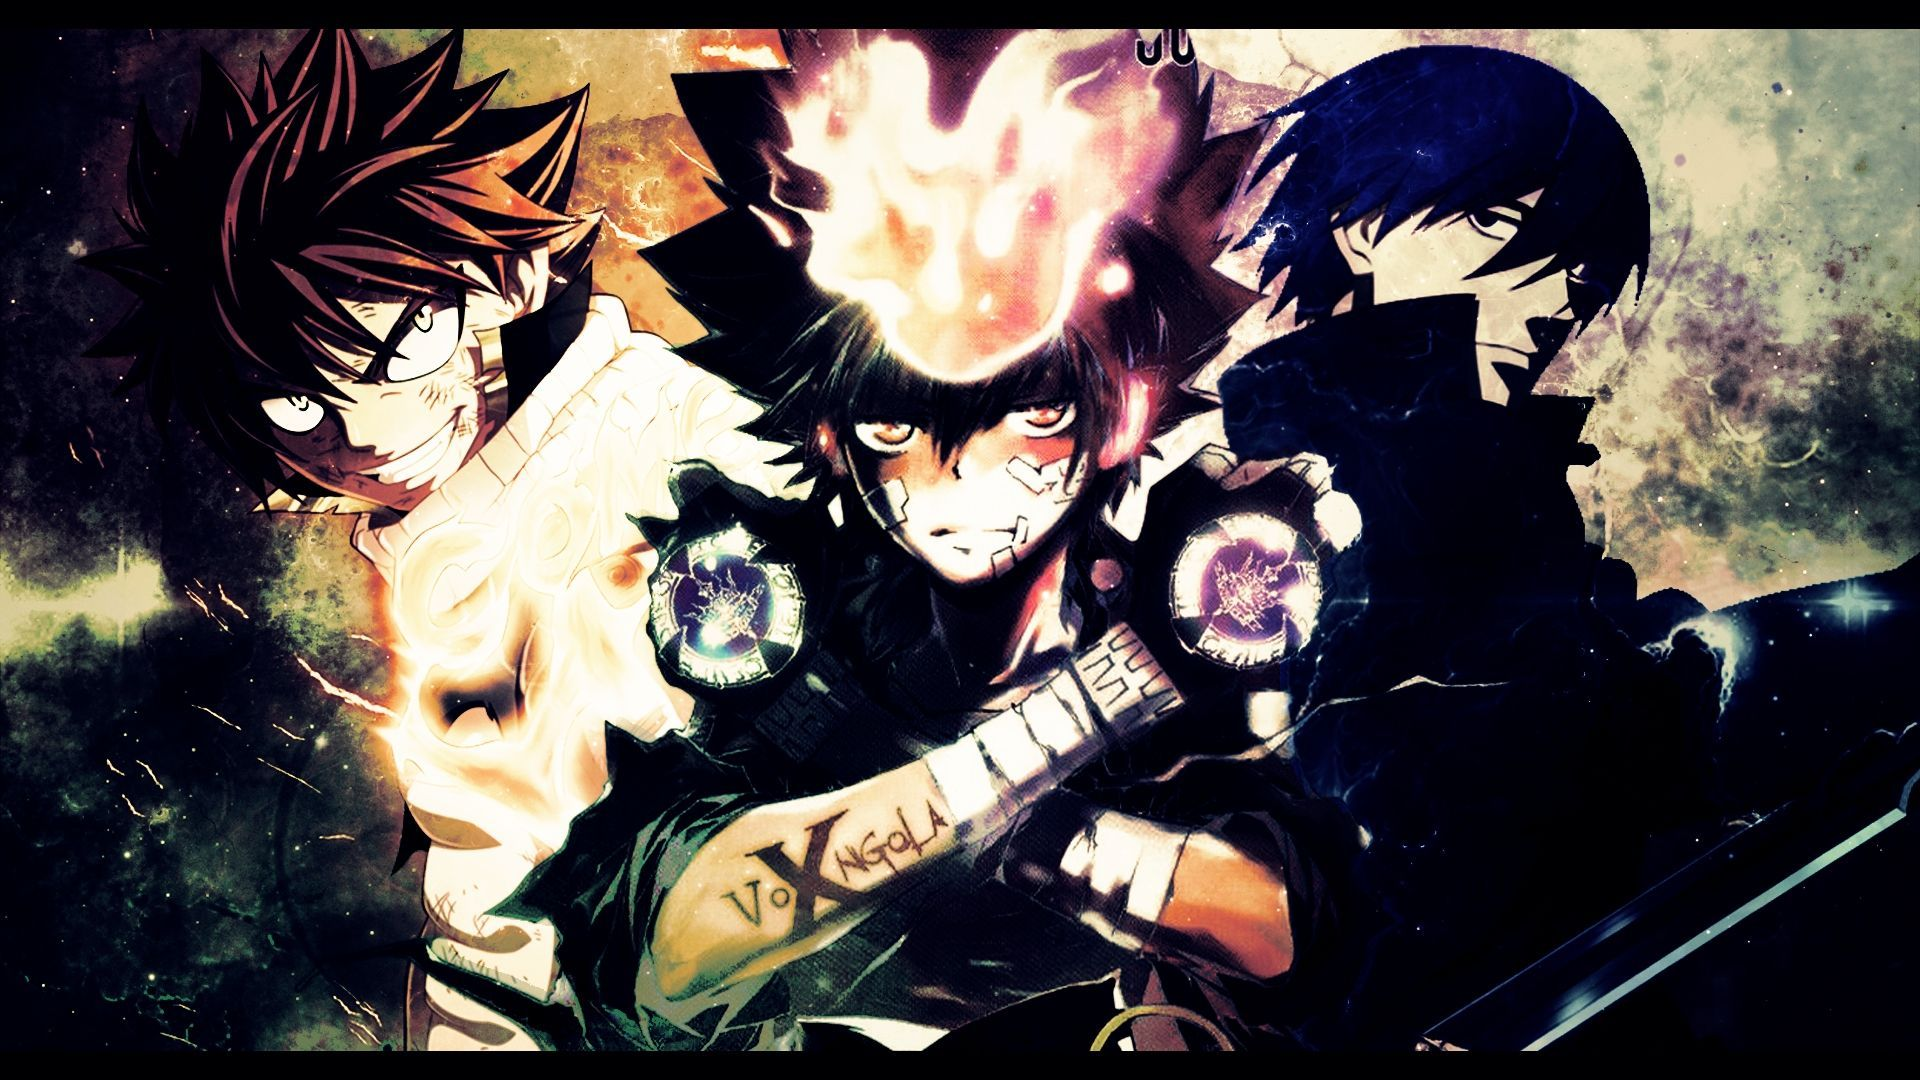 1920x1080 HD Anime Wallpapers Find best latest HD Anime Wallpapers for your PC ...